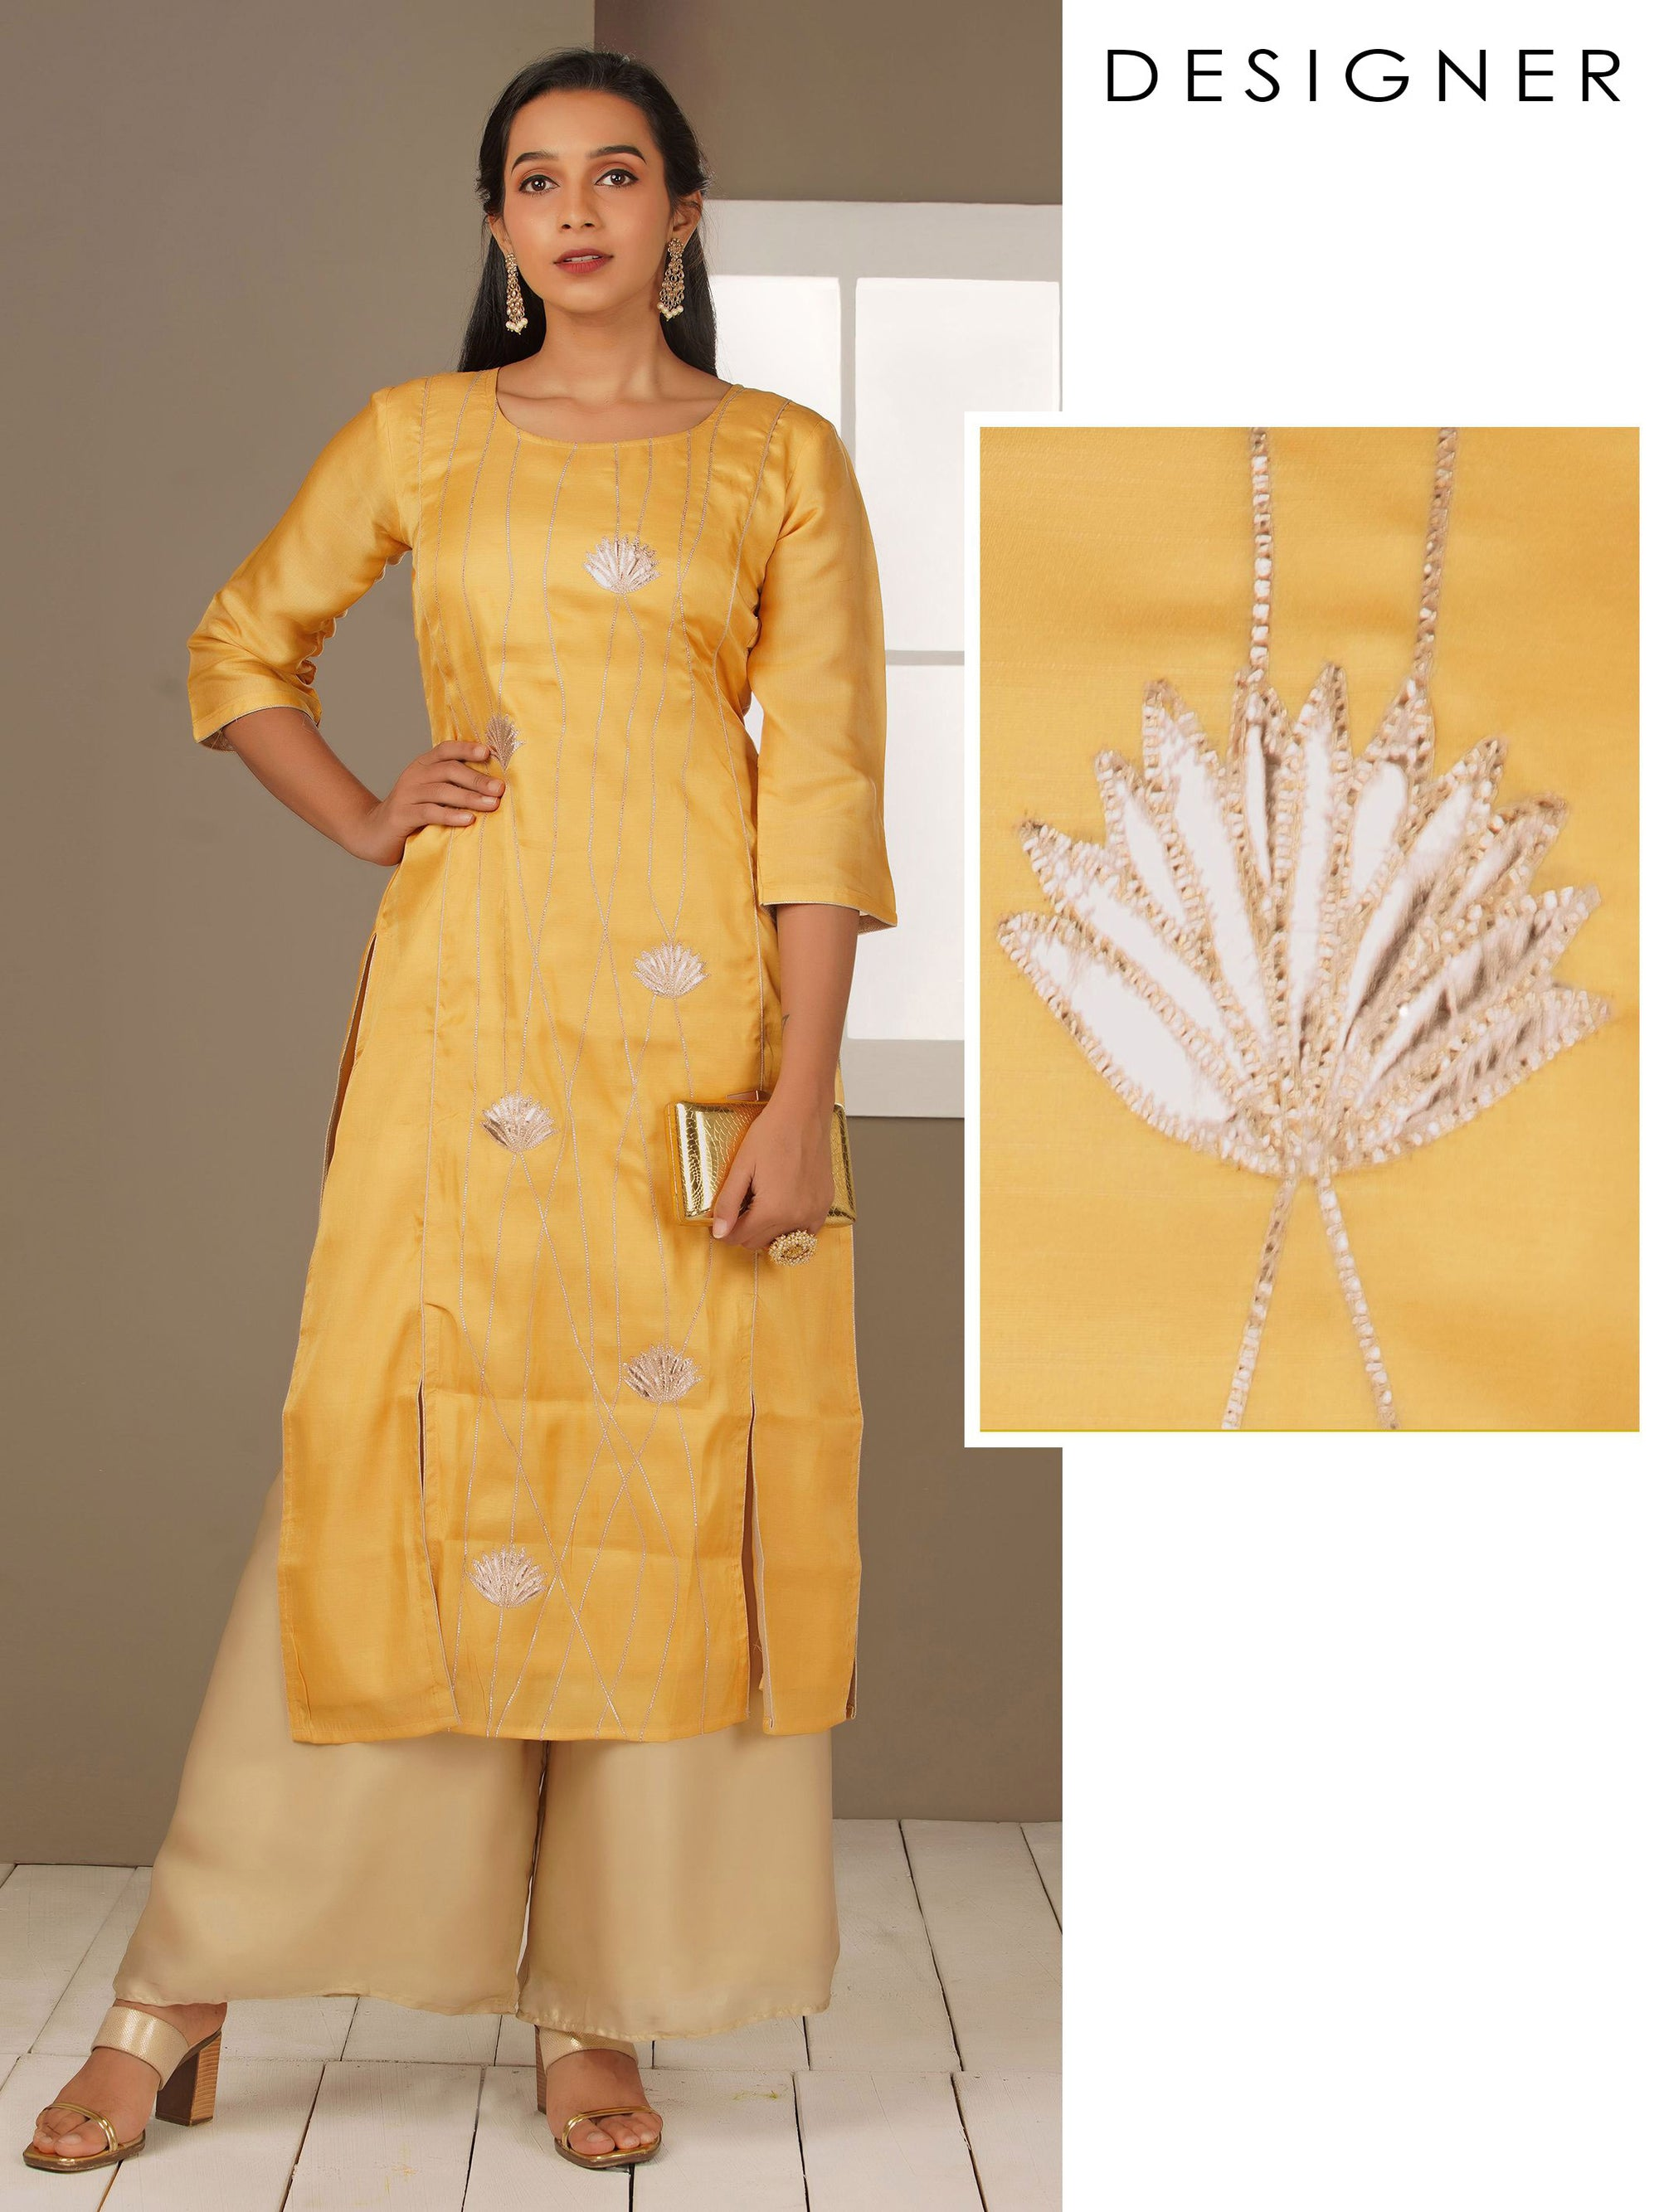 Gold Zari Applique Embroidered Kurti - Yellow